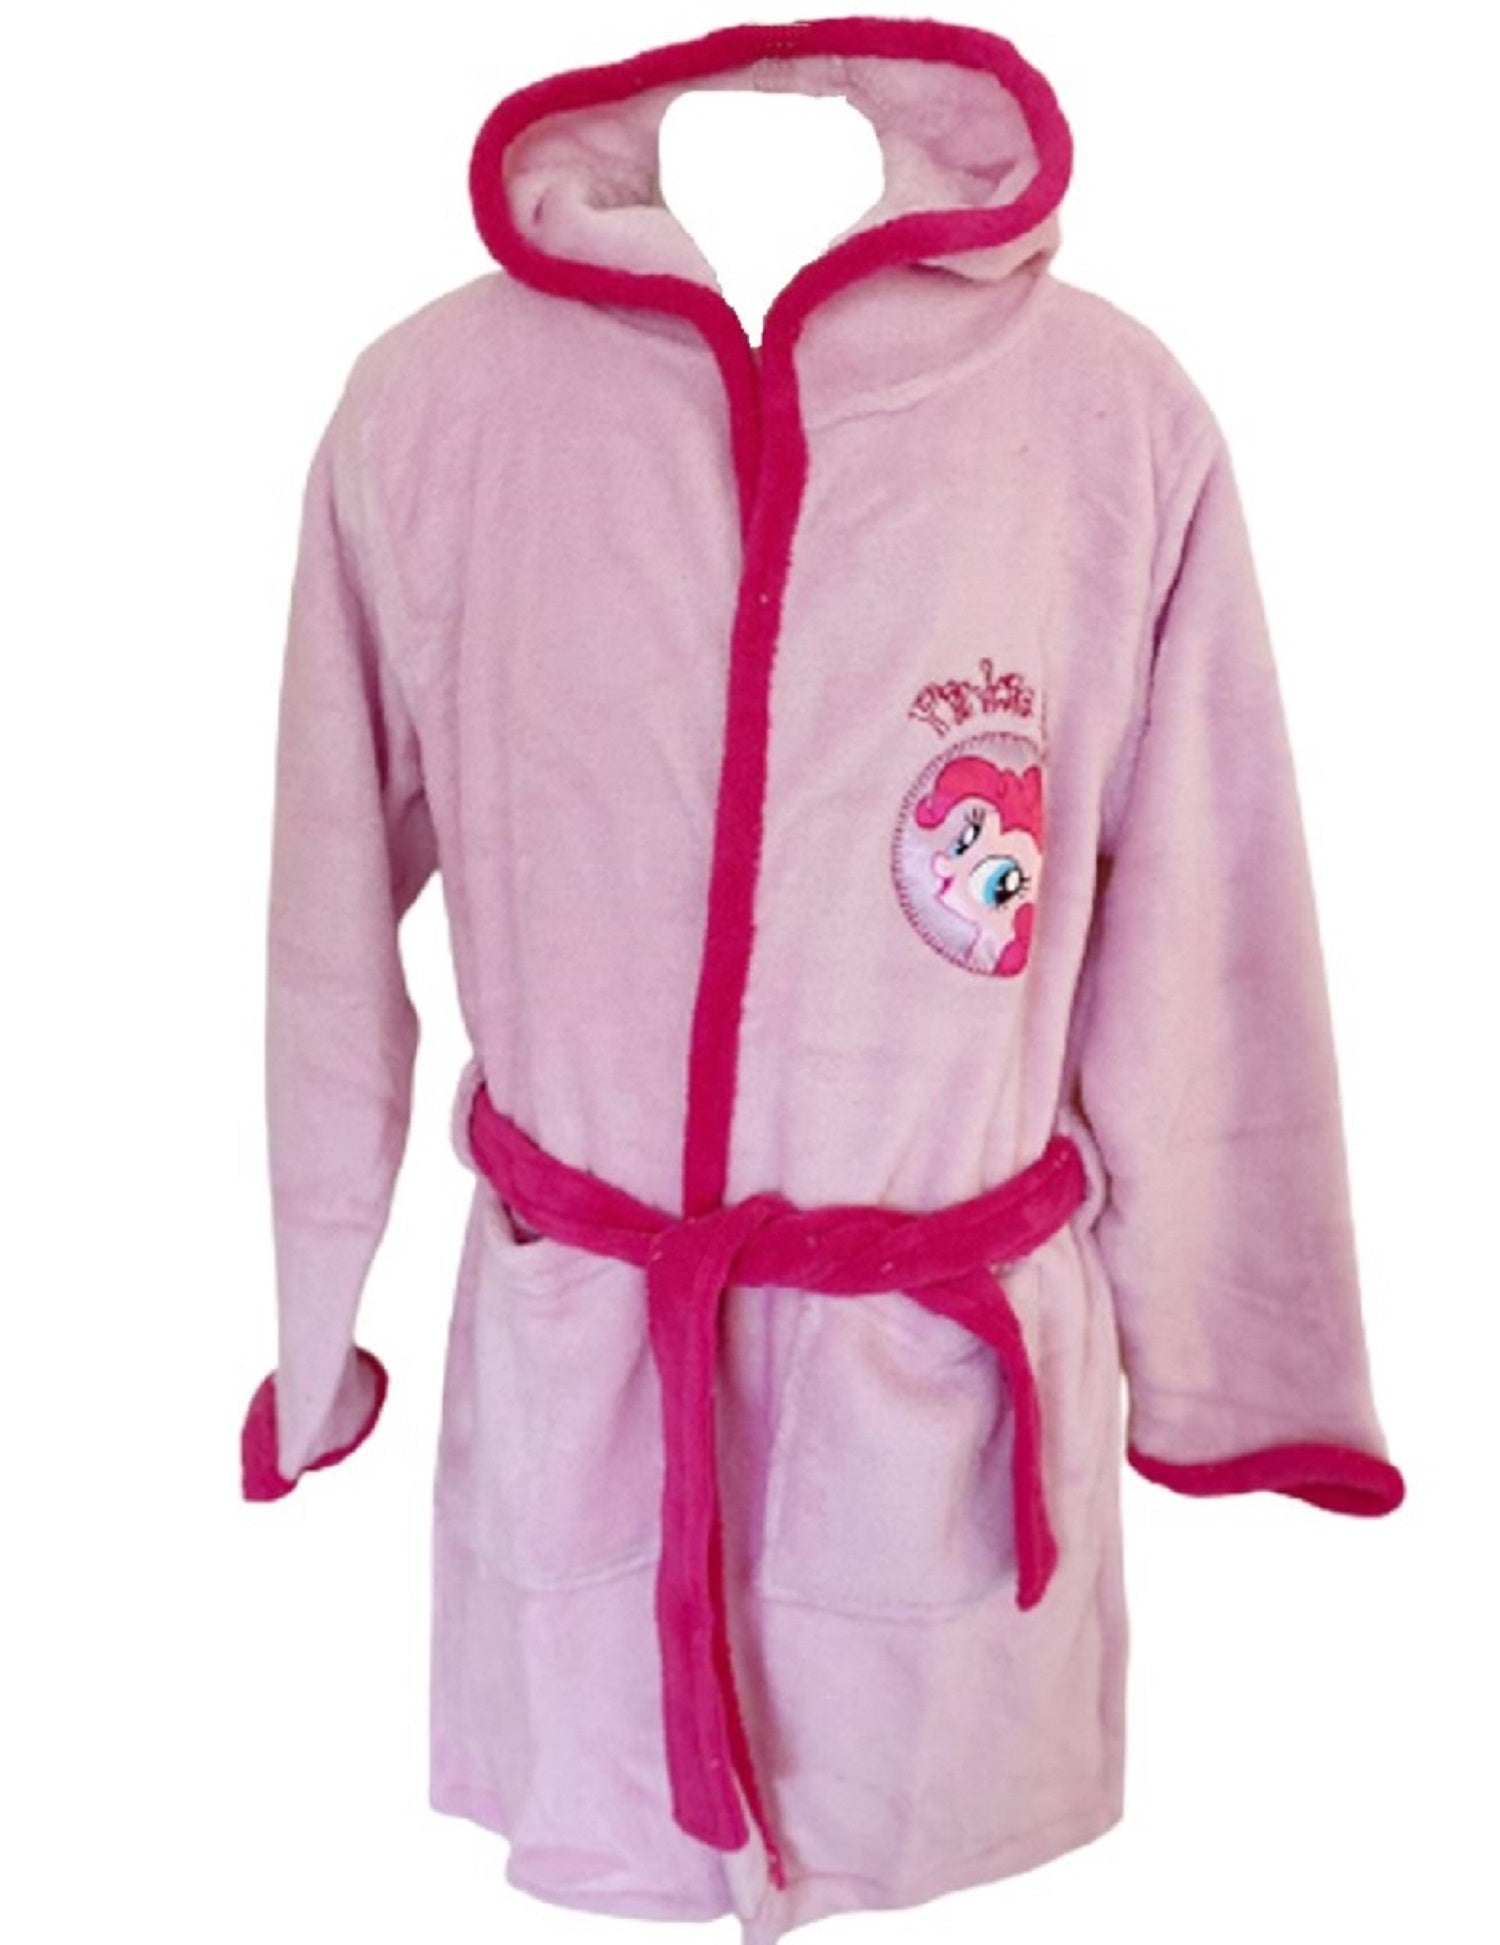 My Little Pony Pink Dressing Gown Soft Fleece Bathrobe Hooded Robe for Girls